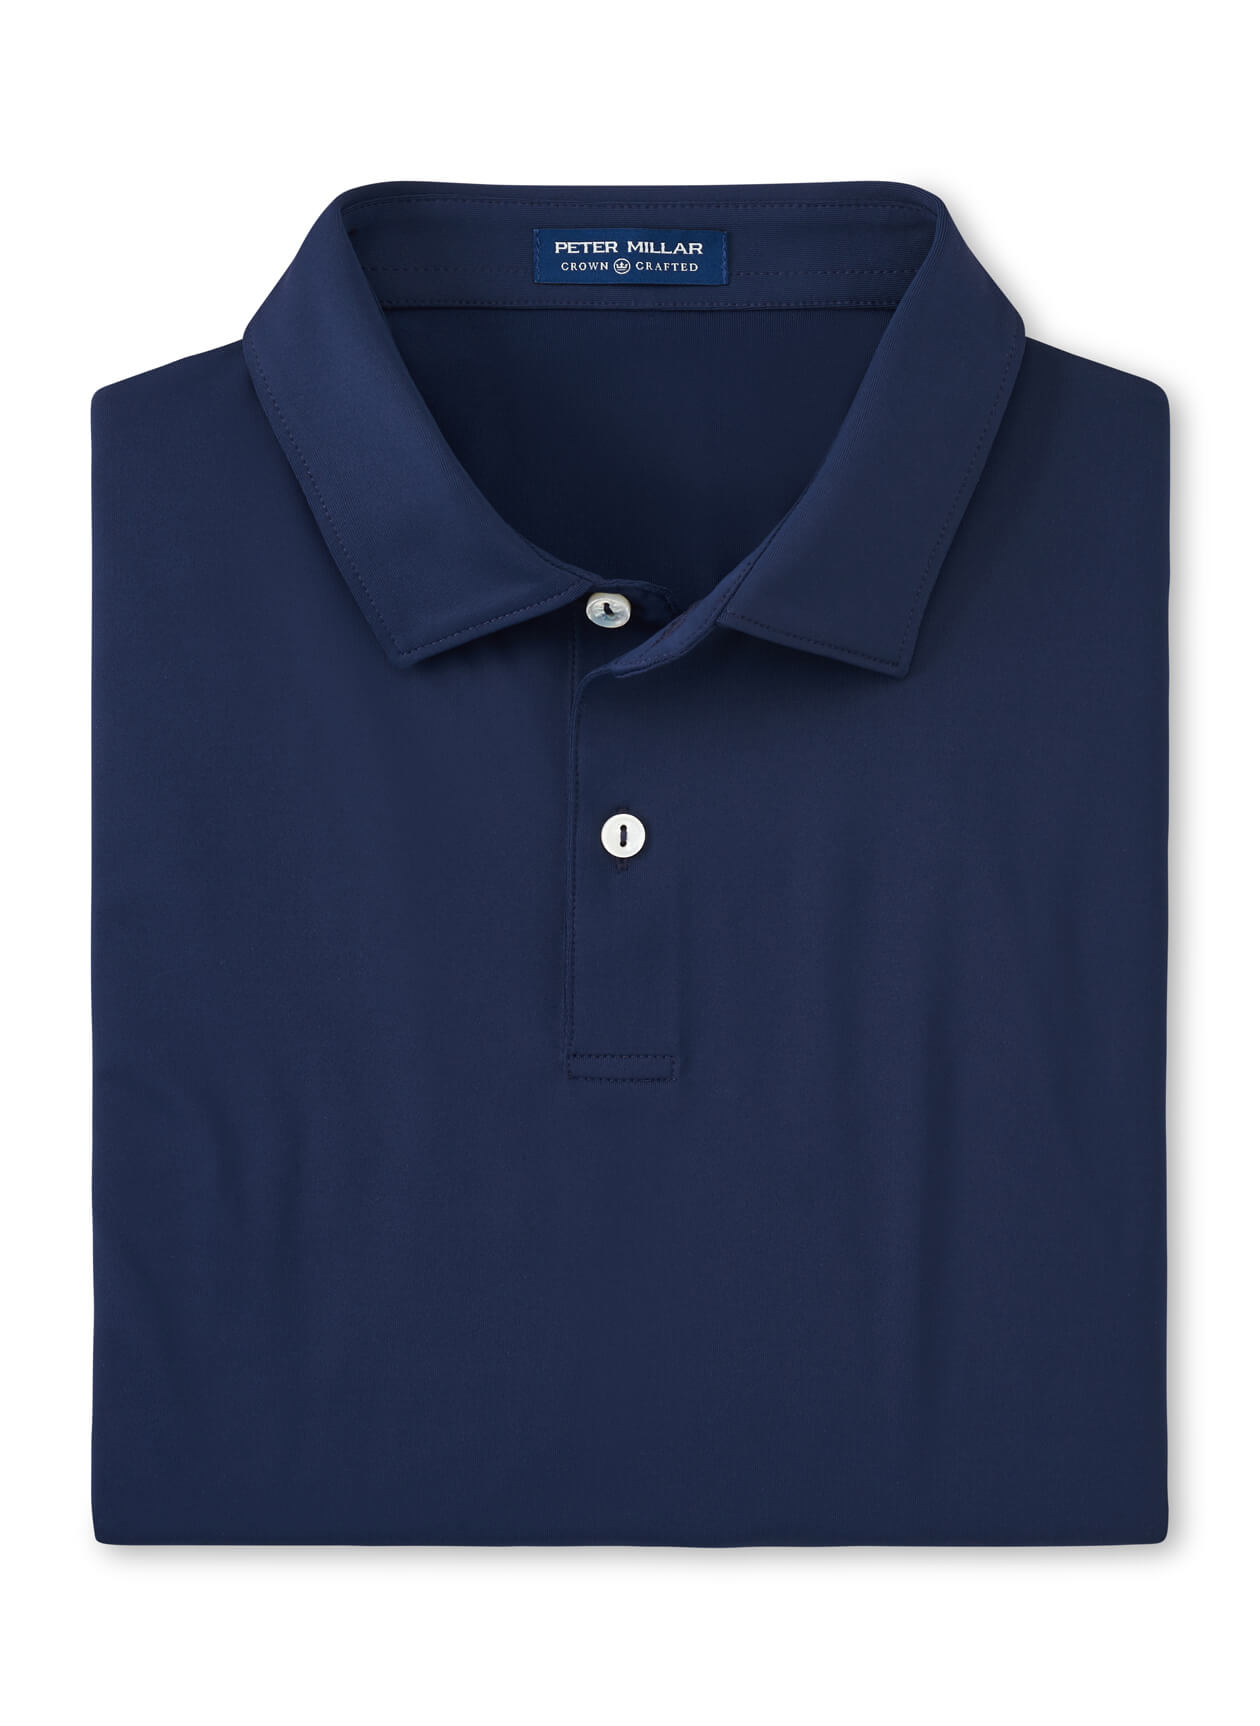 Peter Millar Men's Solid Performance Jersey Polo